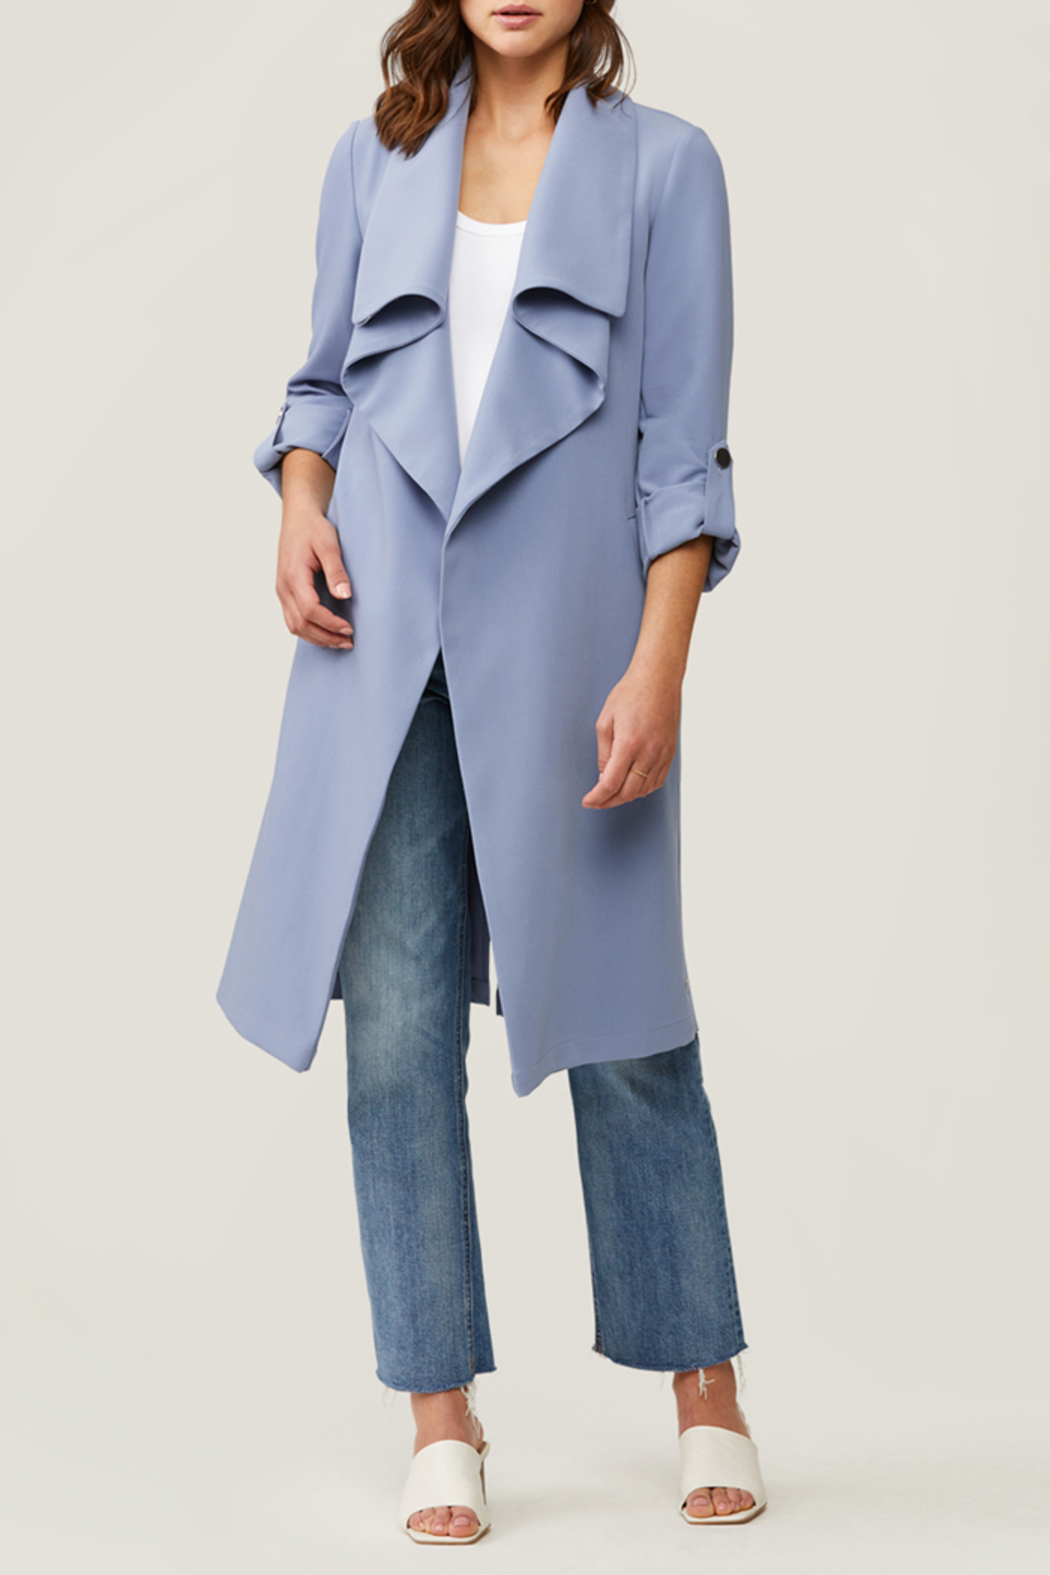 Soia & Kyo SOIA & KYO LIGHTWEIGHT OUTER JACKET - Front Full Image